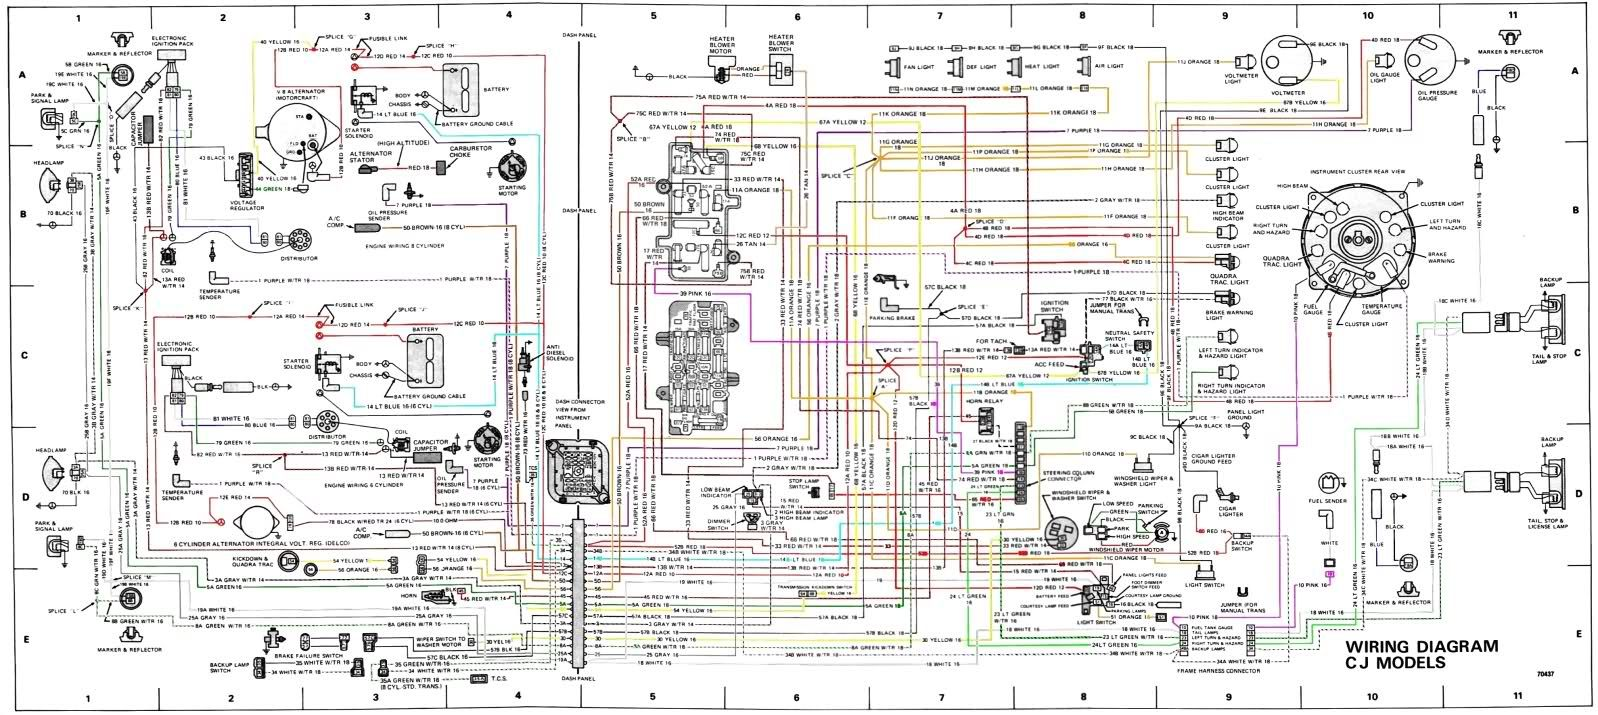 small resolution of image result for jeep cj7 wiring harness diagram jeep wire diagram 83 jeep cj7 wiring